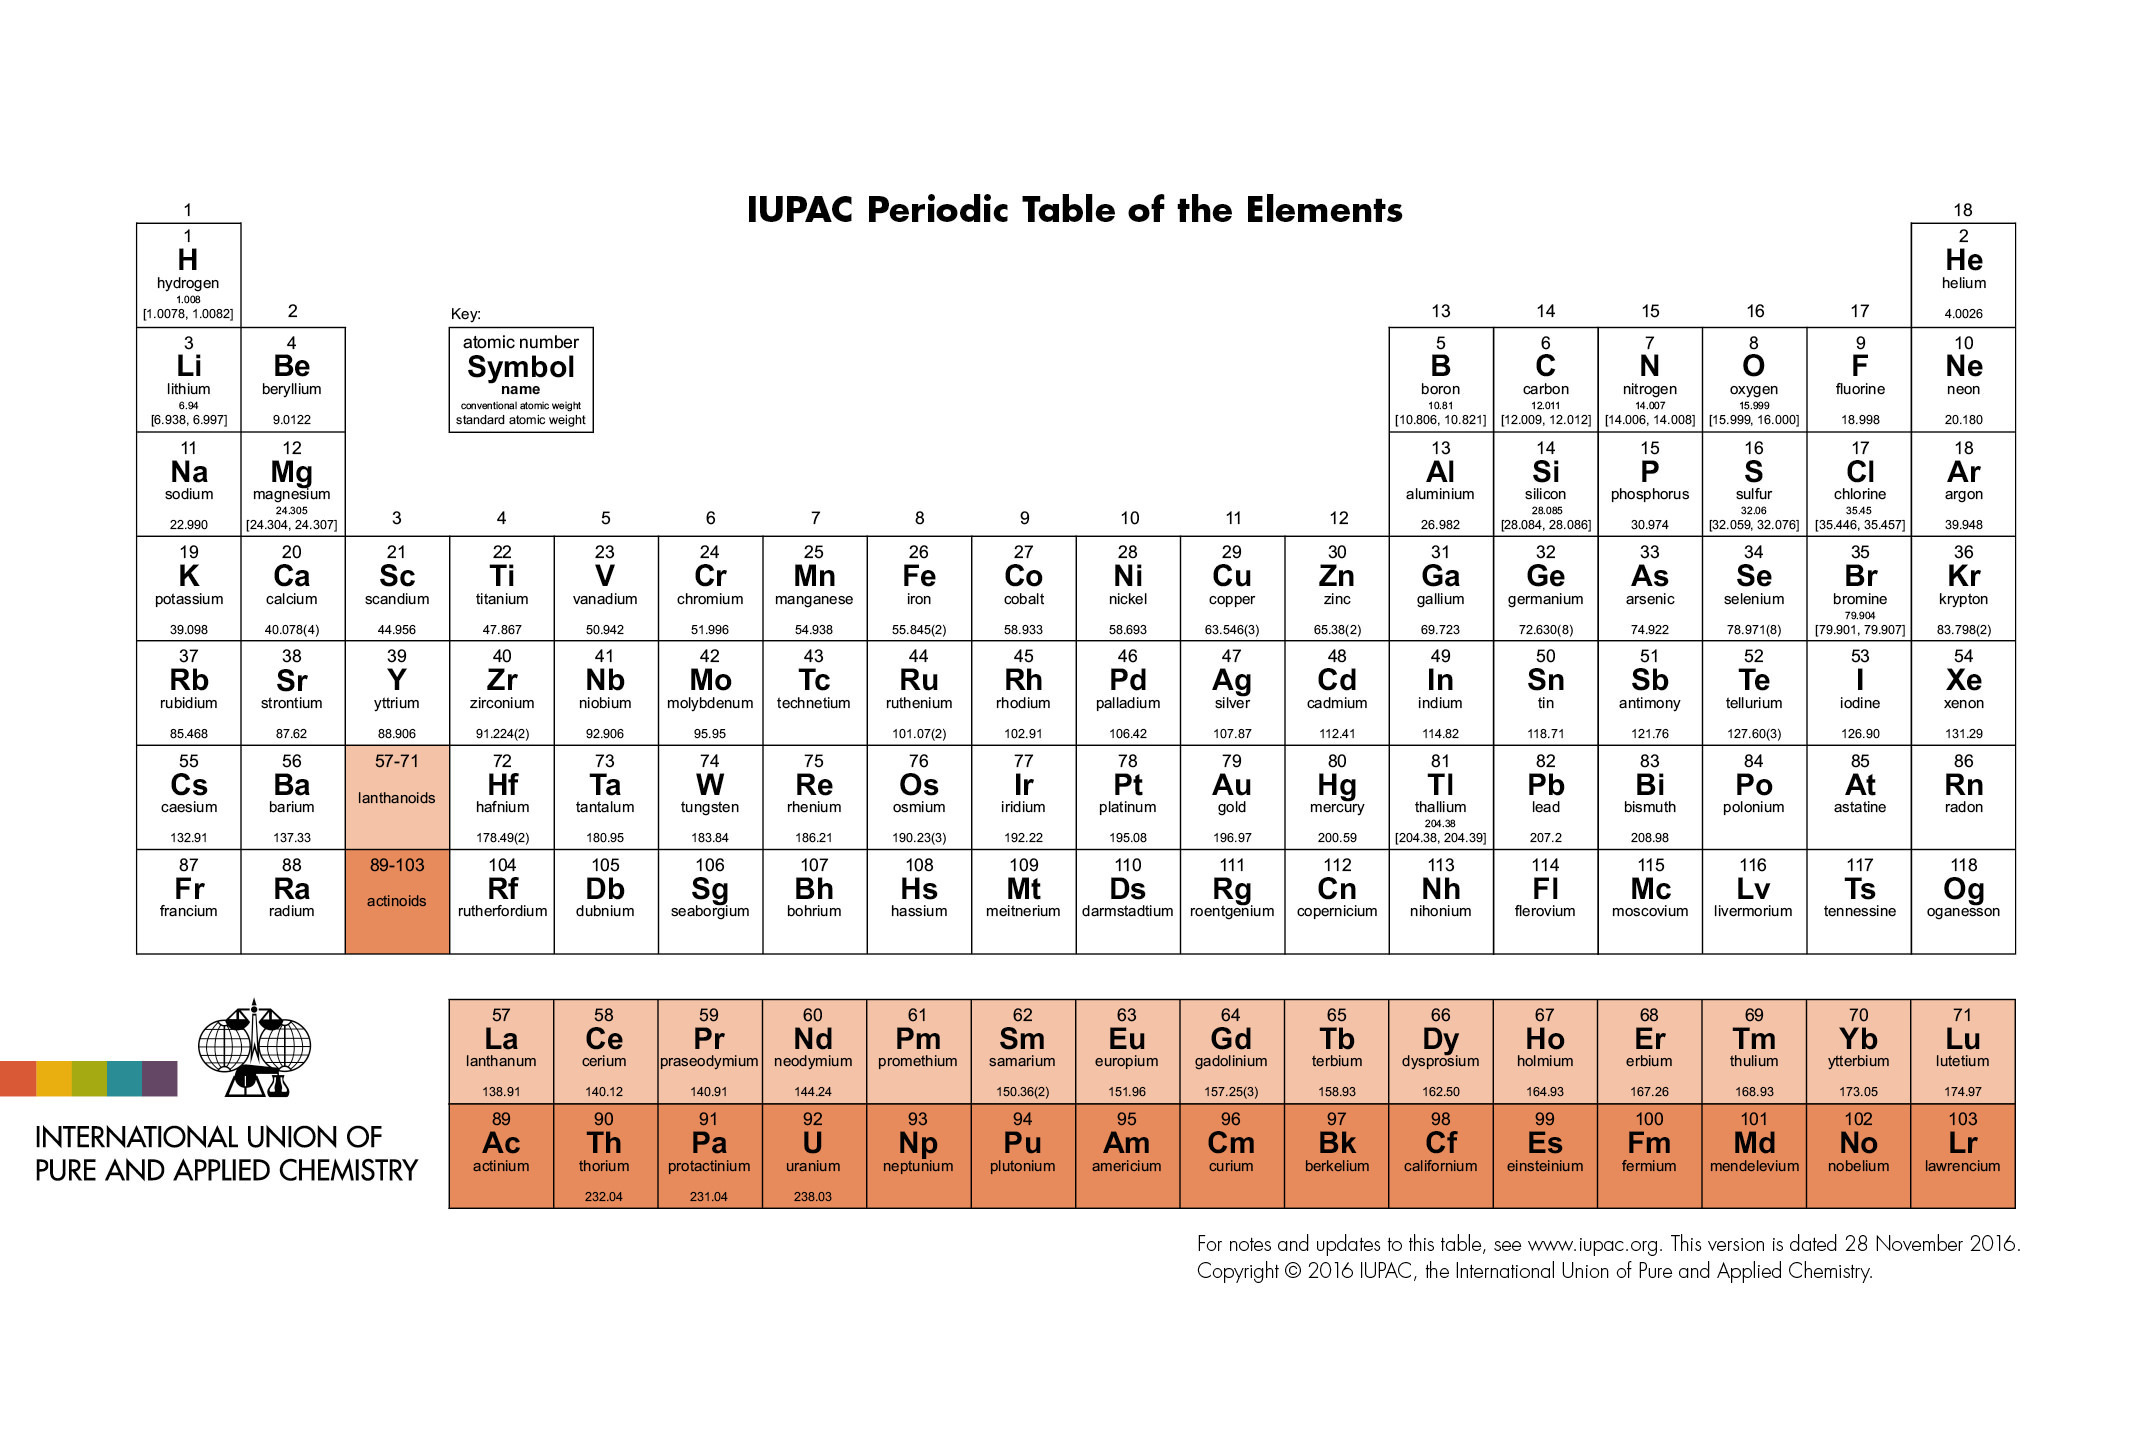 Test questions about periodic table of elements brainly download jpg urtaz Image collections